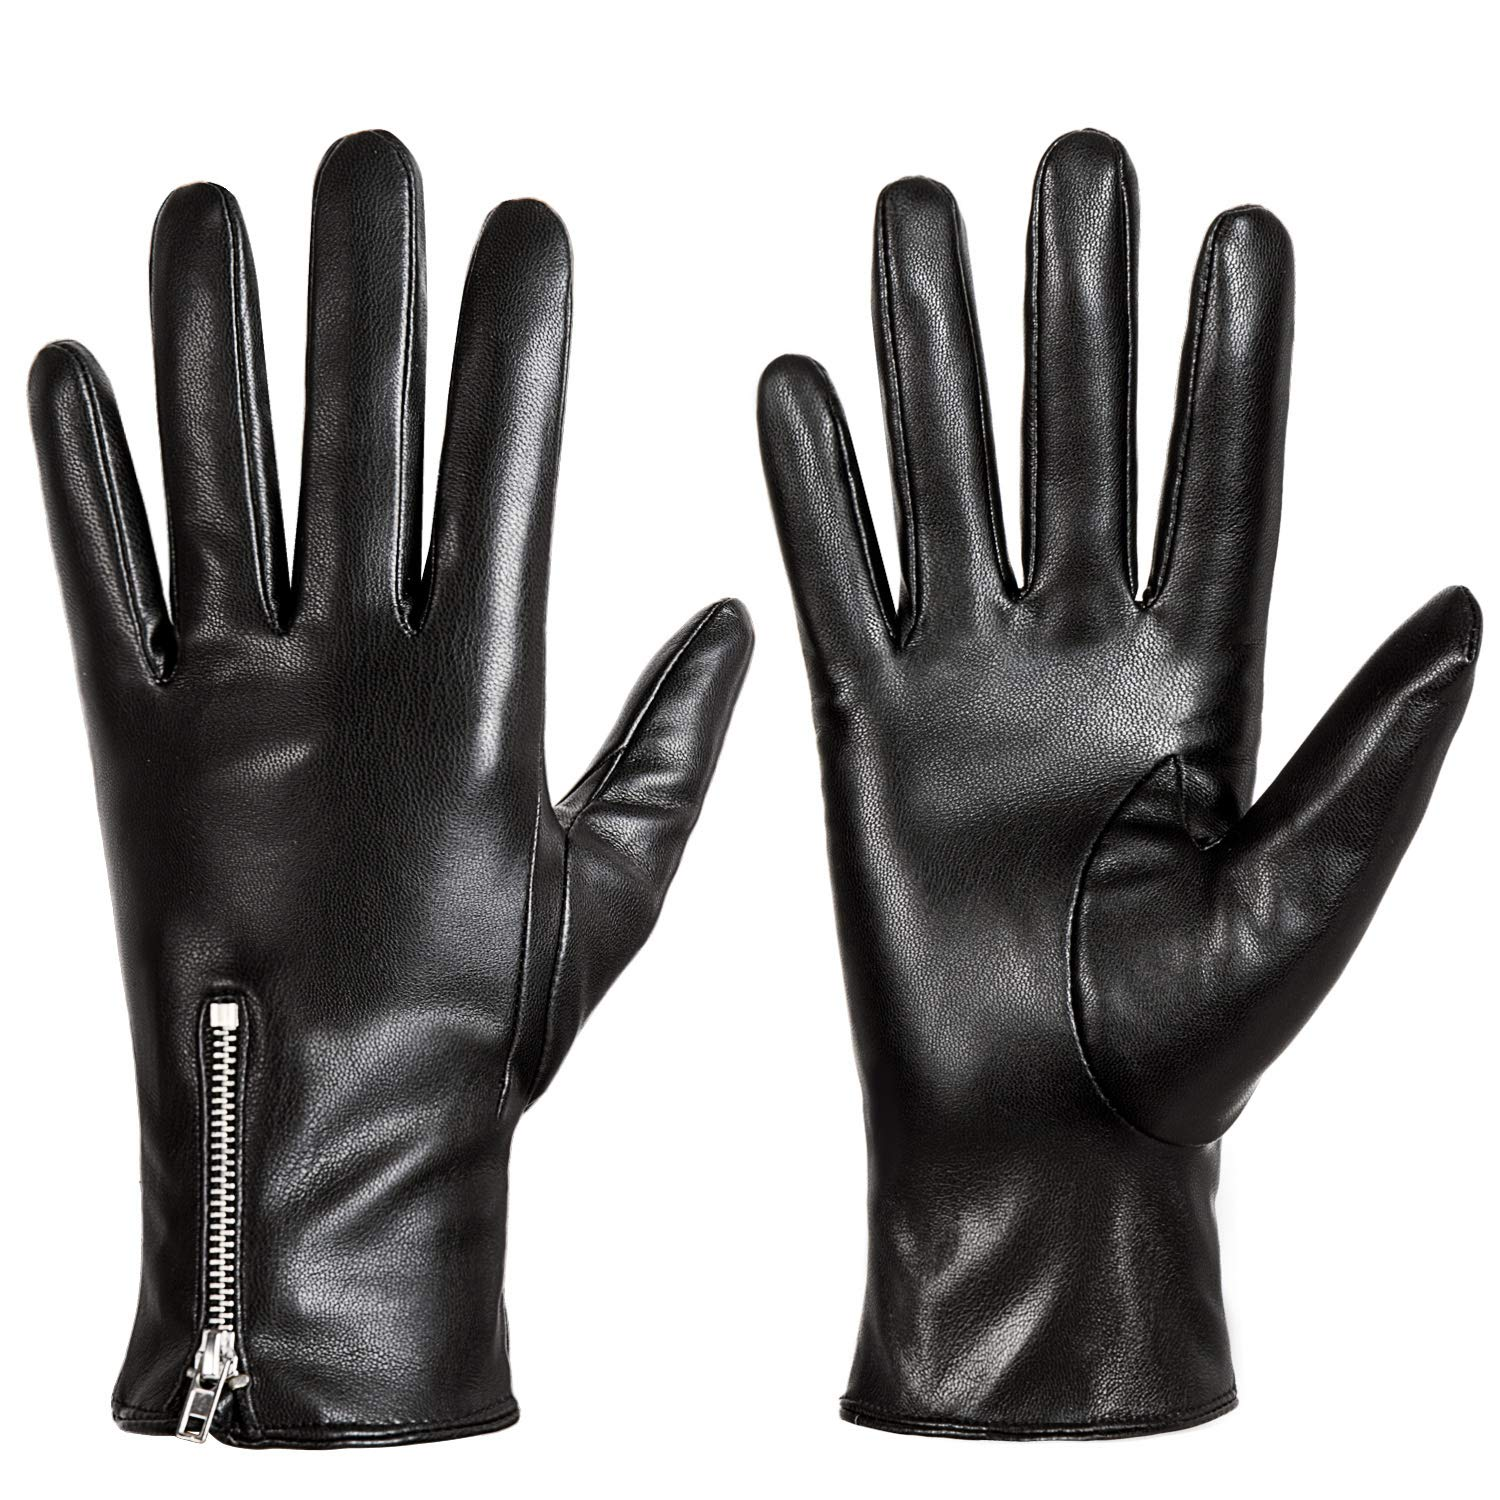 Winter Leather Gloves for Women, Touchscreen Texting Warm Driving Gloves by Dsane by Dsane